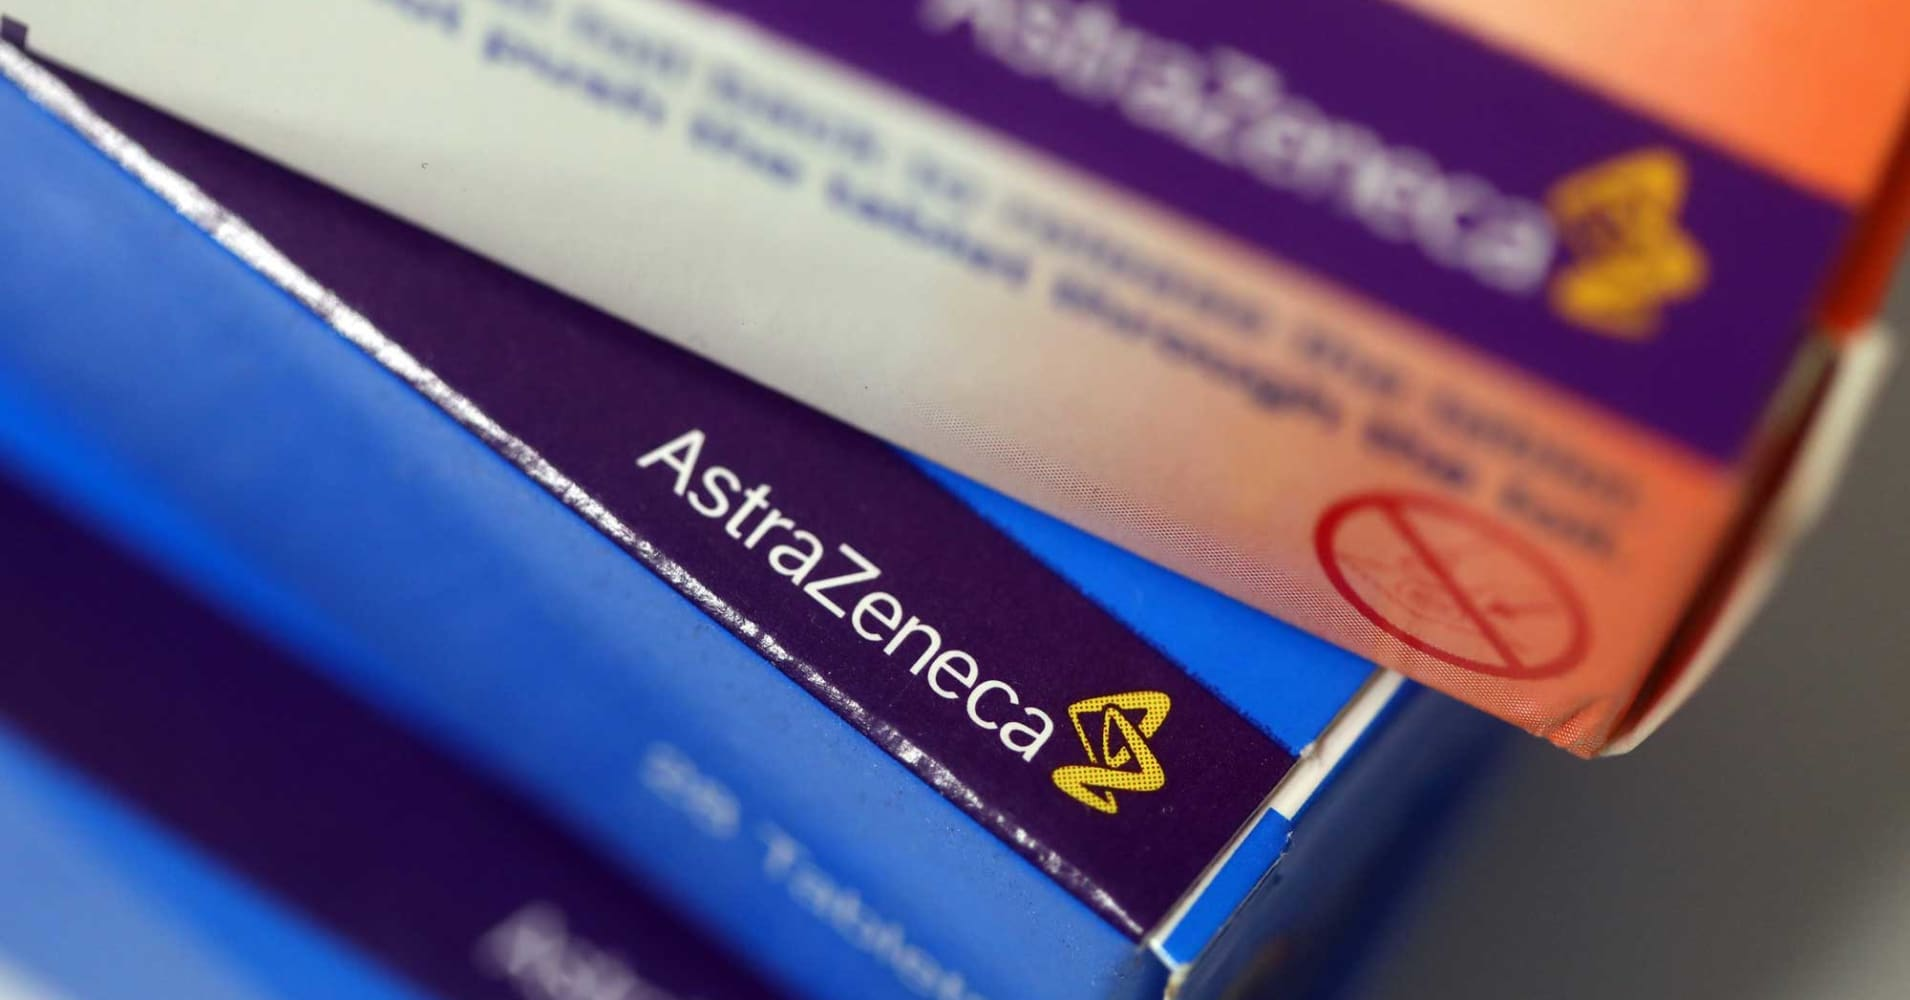 AstraZeneca's dramatic share dive amid drug trial setback 'not justified', says star stock picker